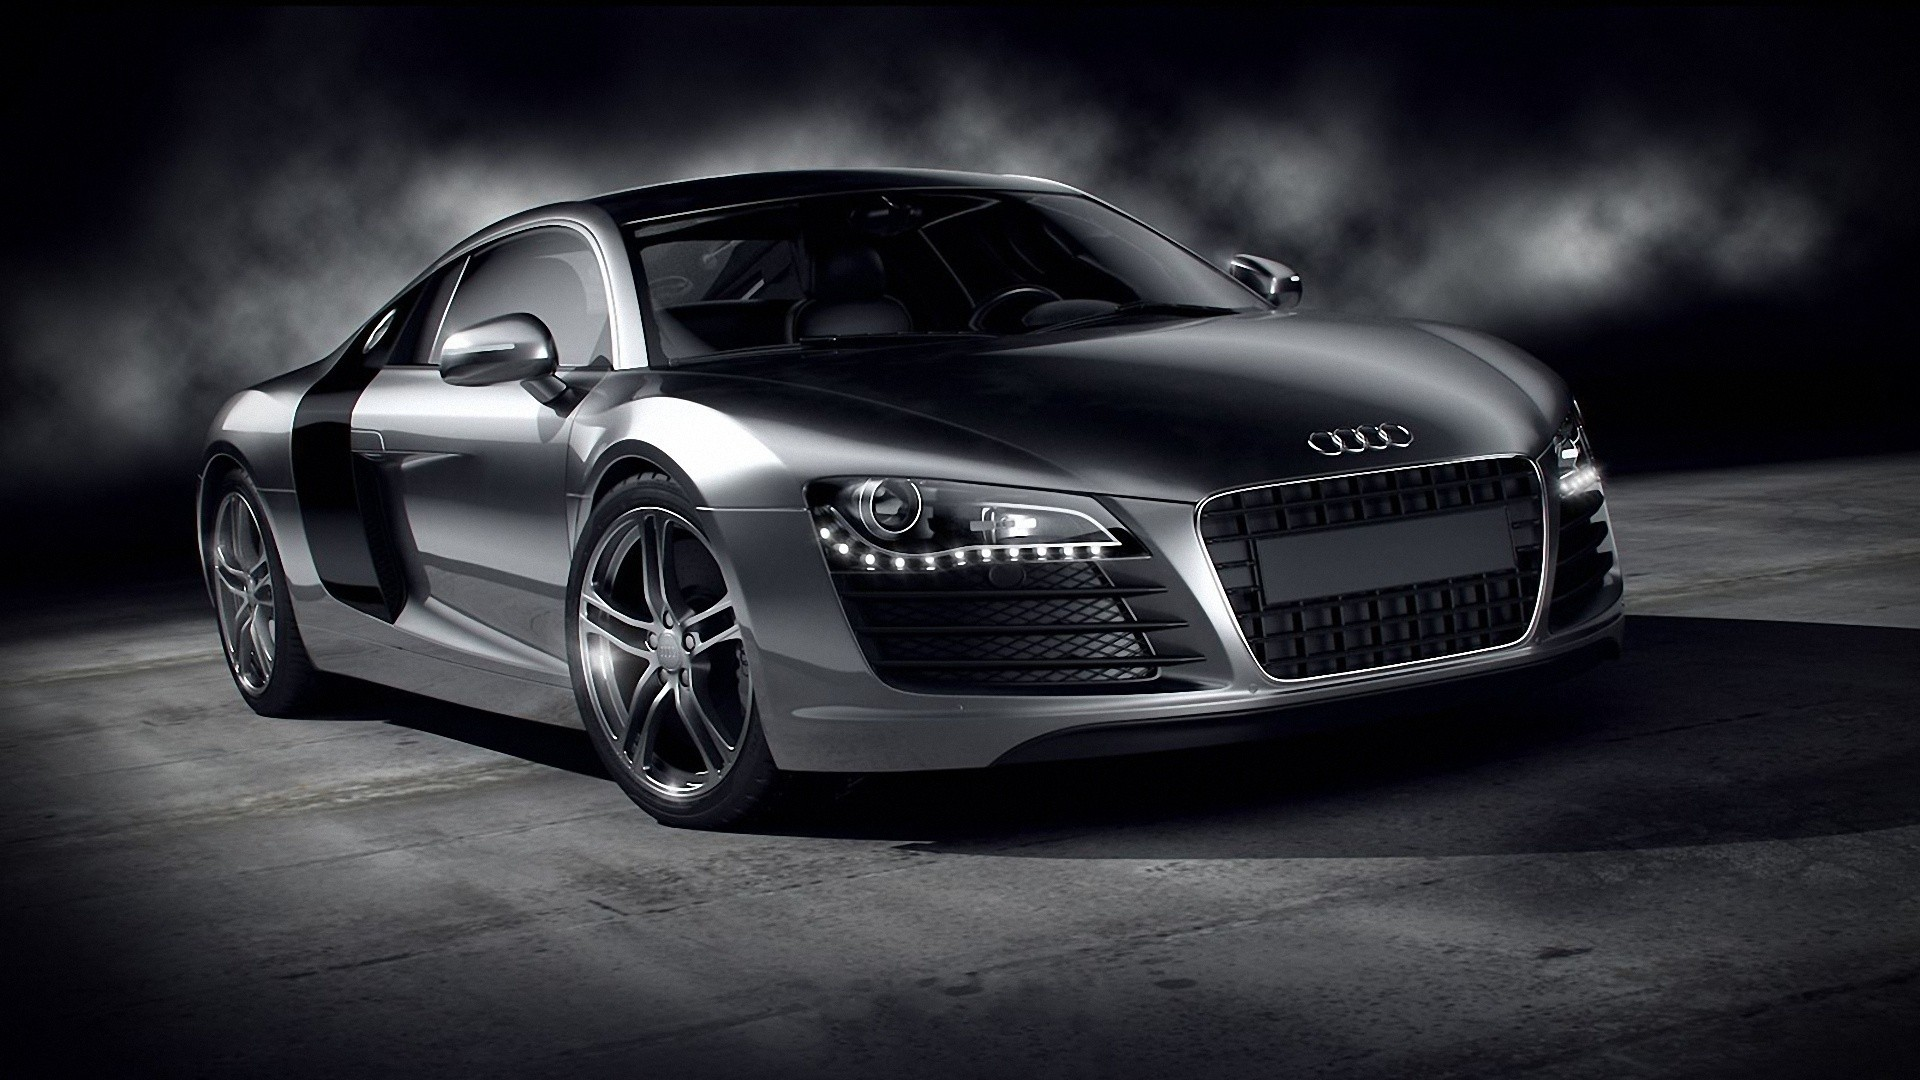 Audi R8 Wallpaper HD Free Download